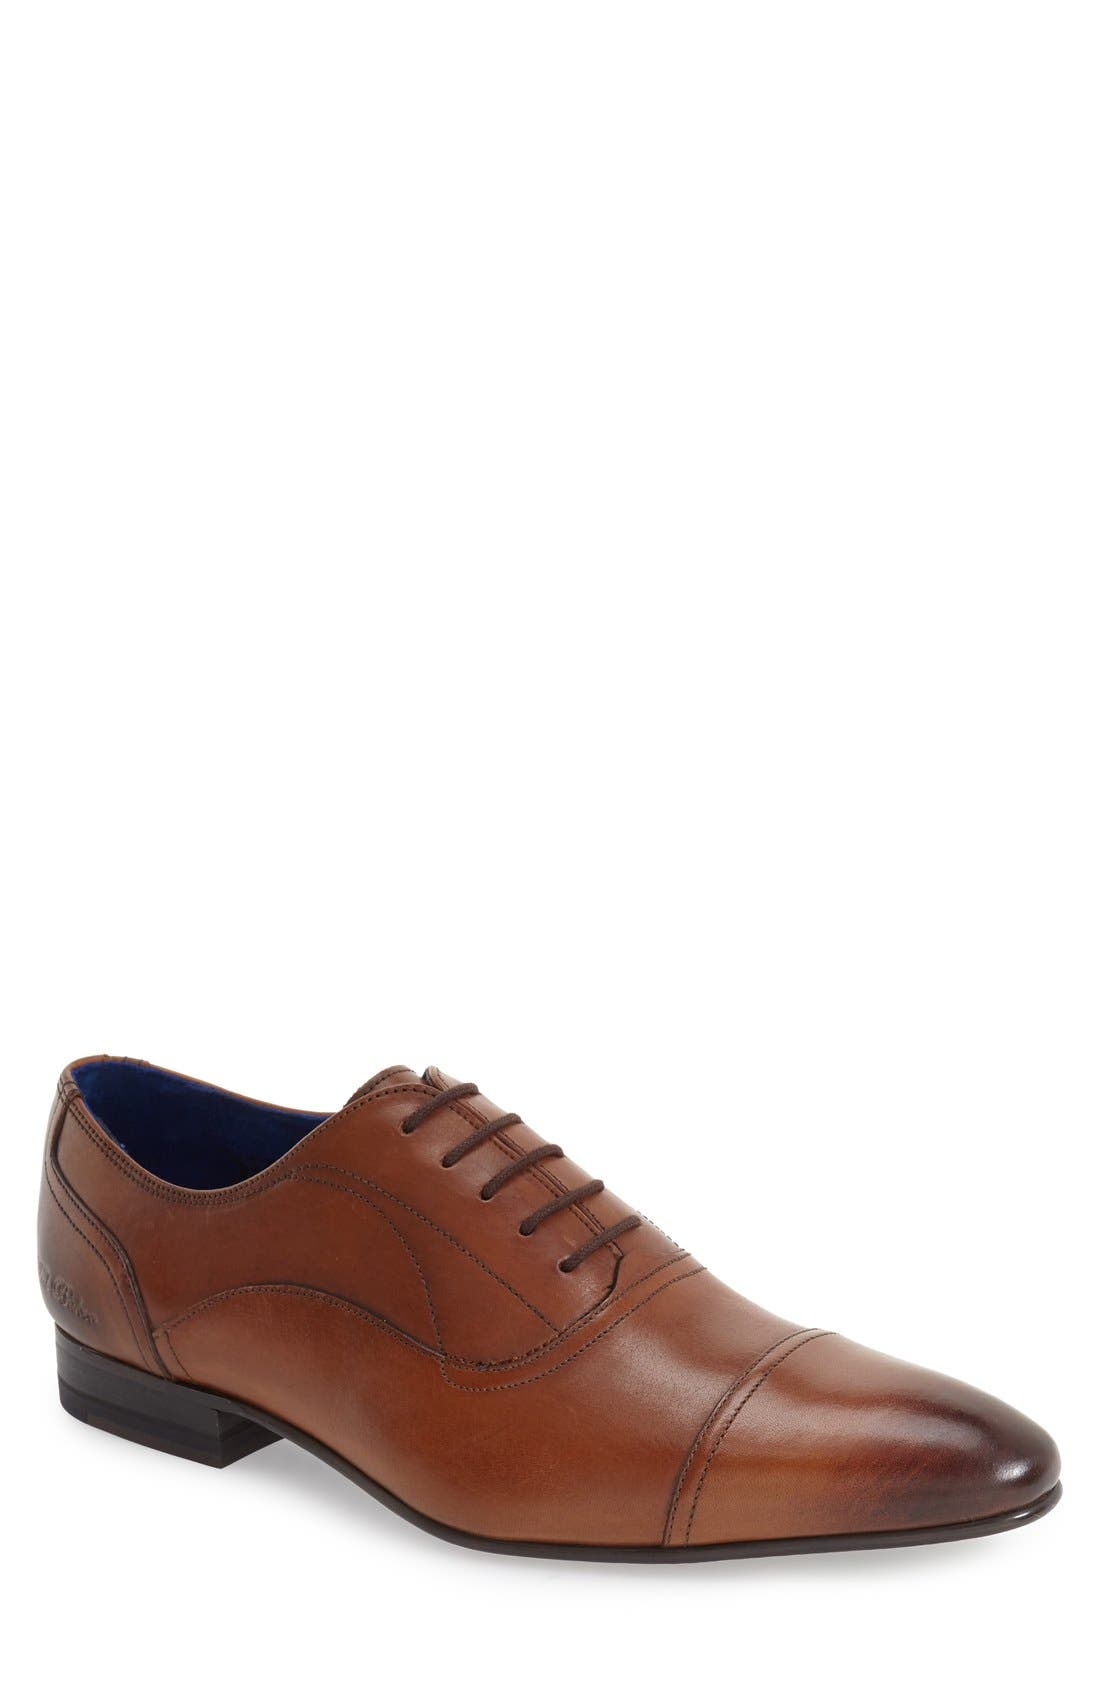 Ted Baker London 'Umbber' Cap Toe Oxford (Men)